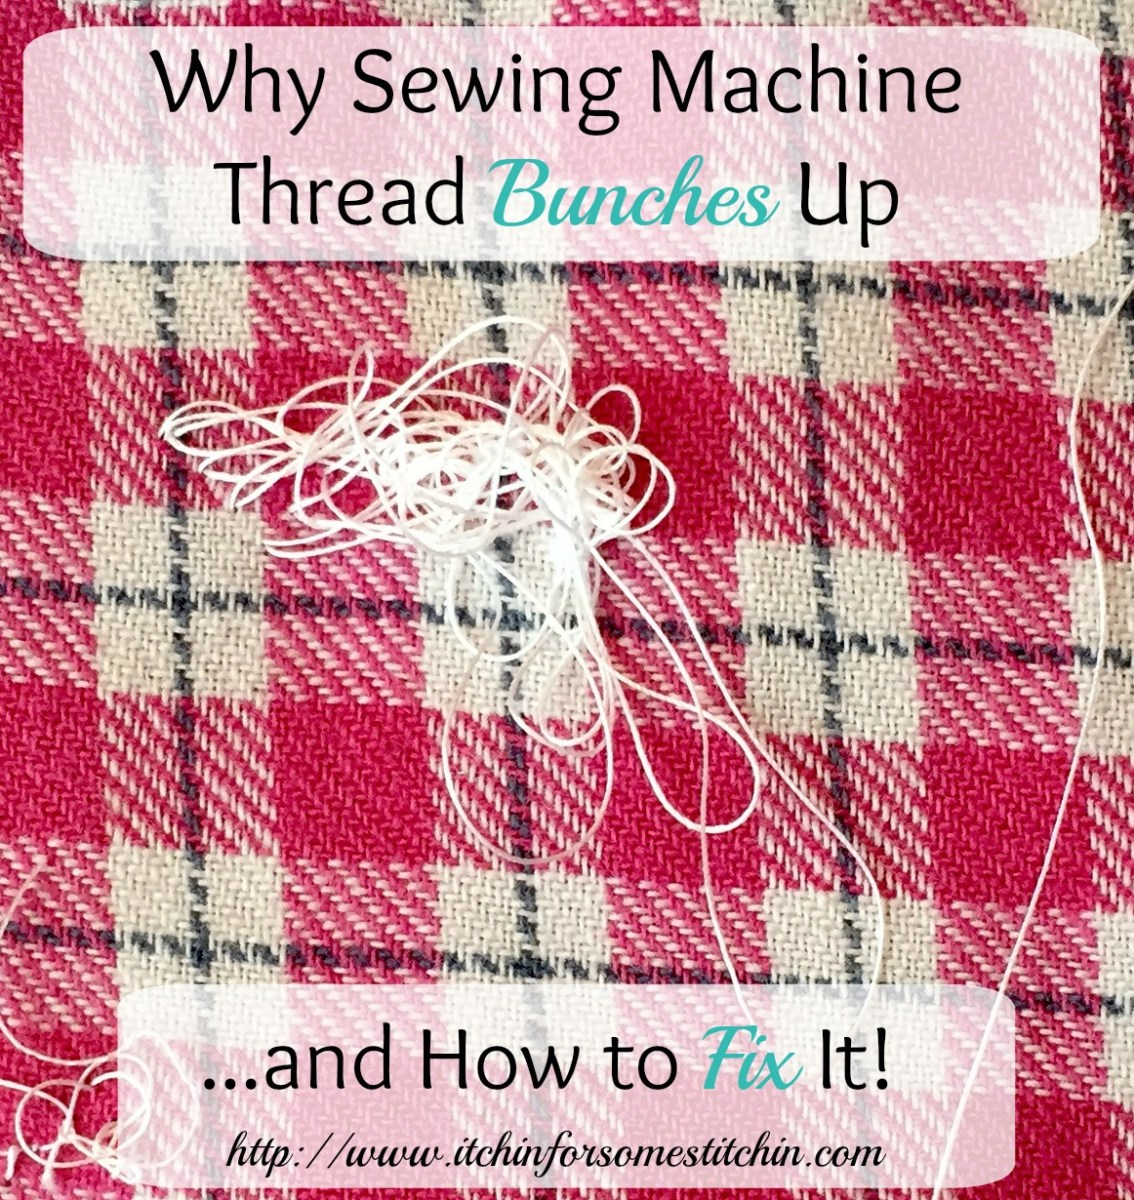 Why Sewing Machine Thread Bunches Up & How to Fix It. http://www.itchinforsomestitchin.com